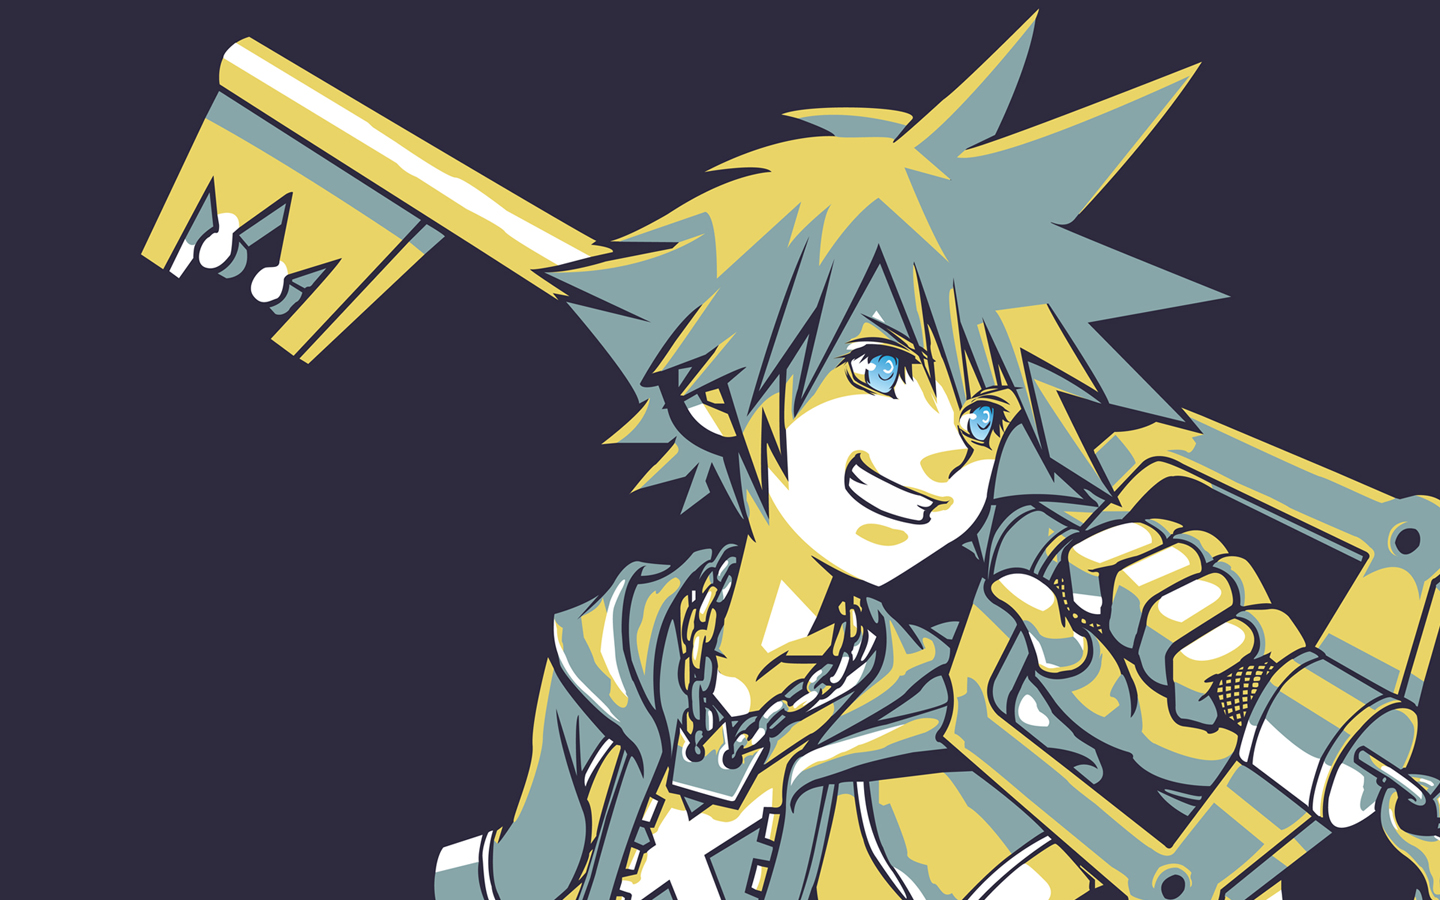 Wallpapers - Kingdom Hearts Insider